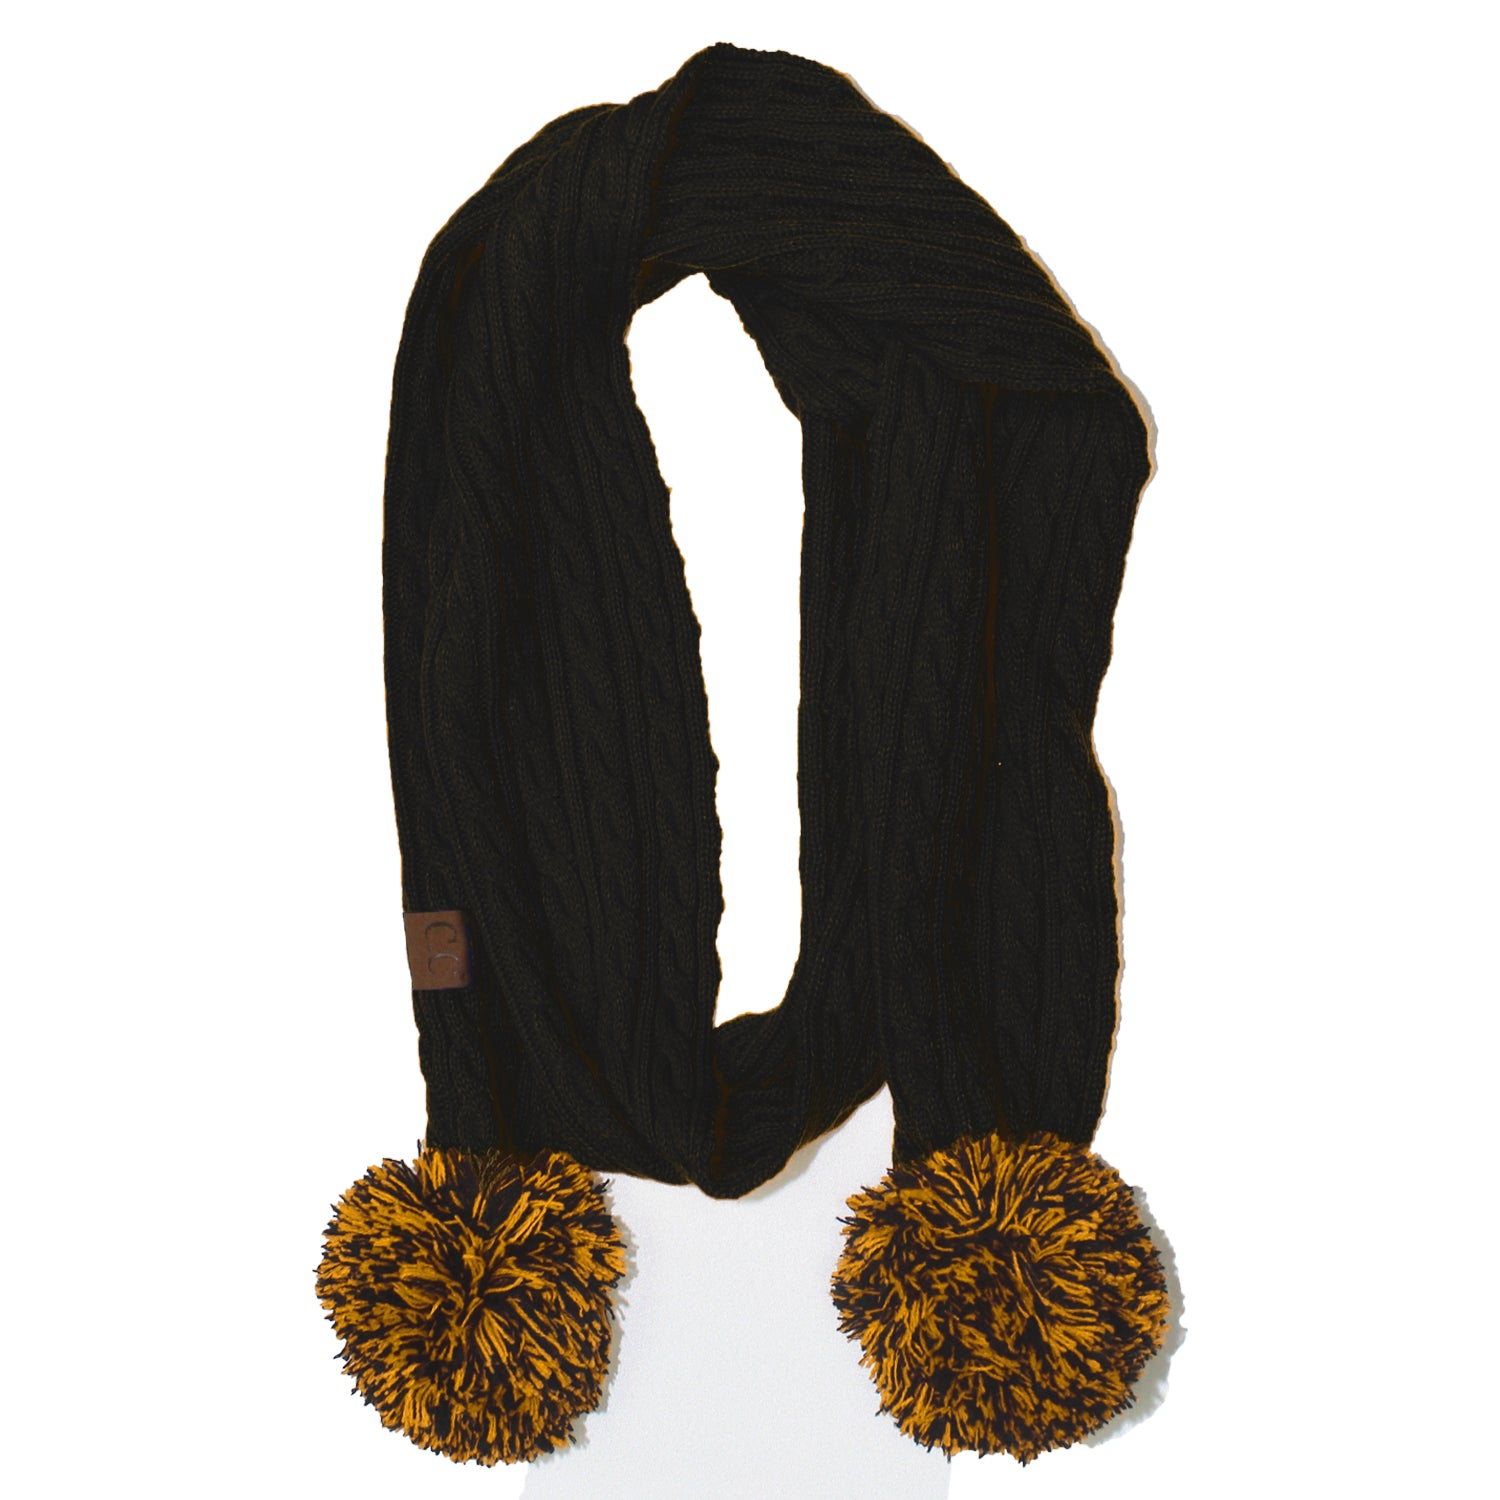 SK-56 Black and Gold Team Pom-Pom Scarf